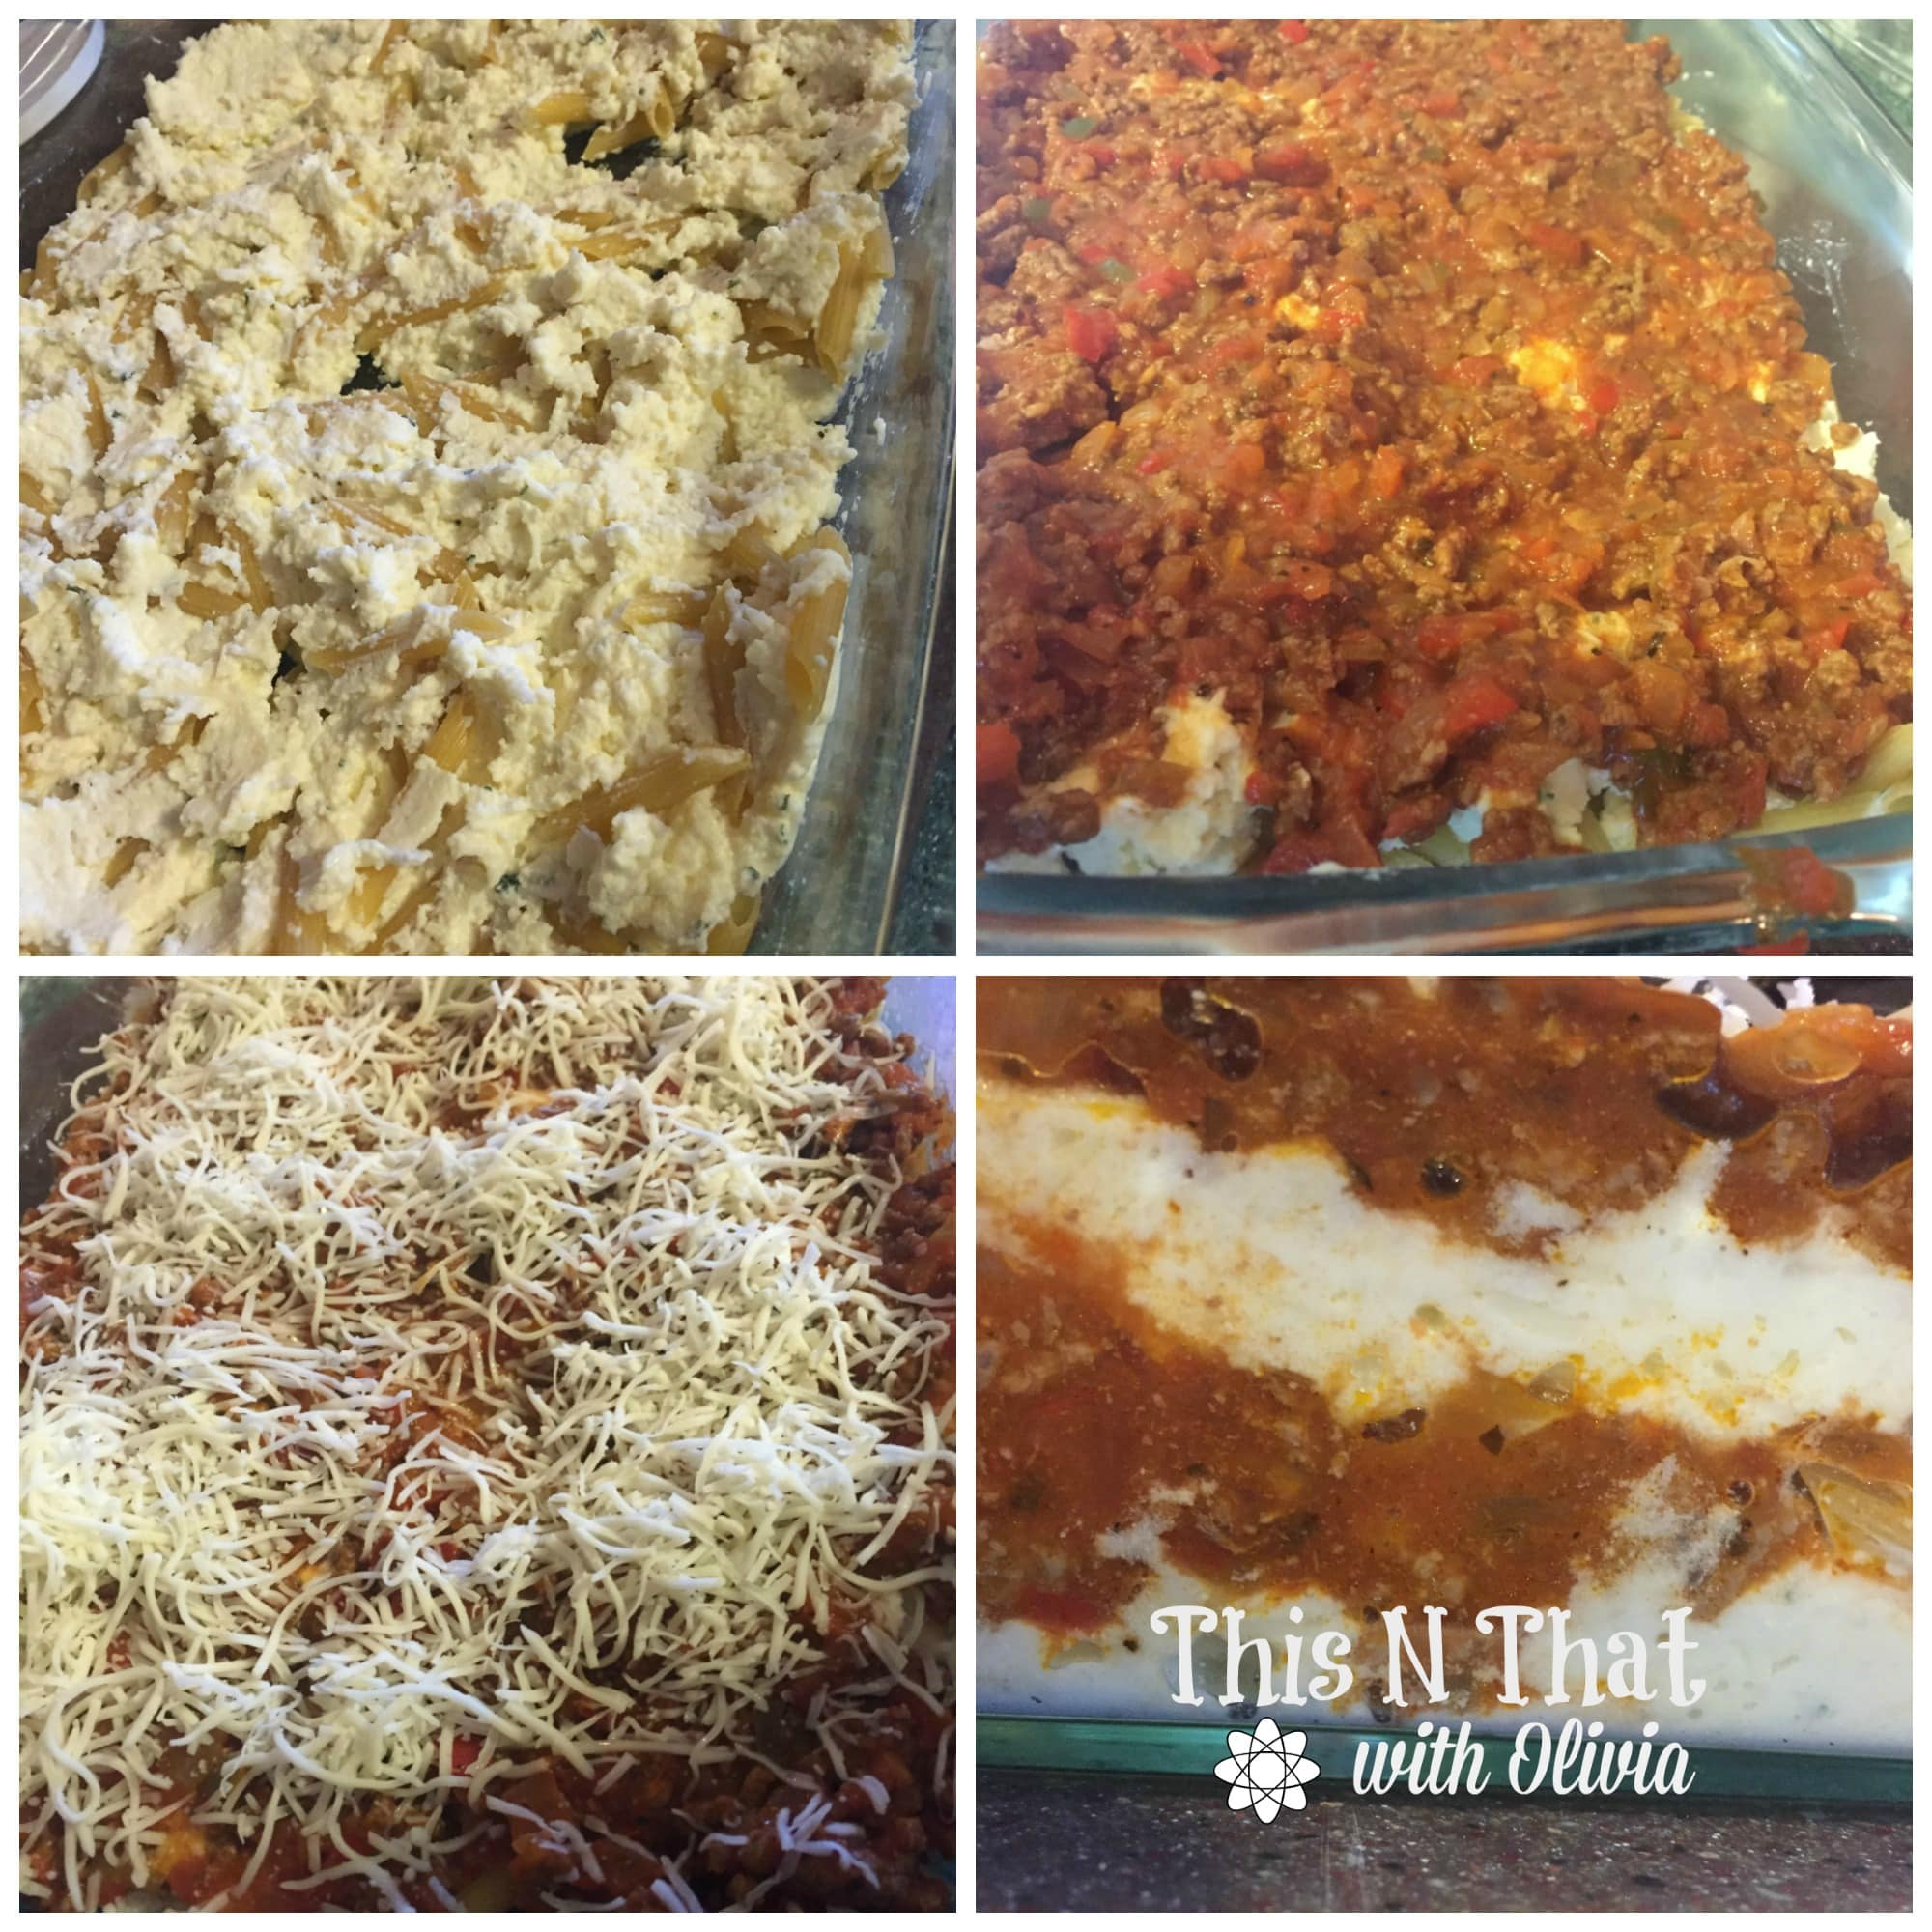 Baked Ziti with Prego® Farmers' Market Sauces #PickedAtPeak #ad | ThisNThatwithOlivia.com